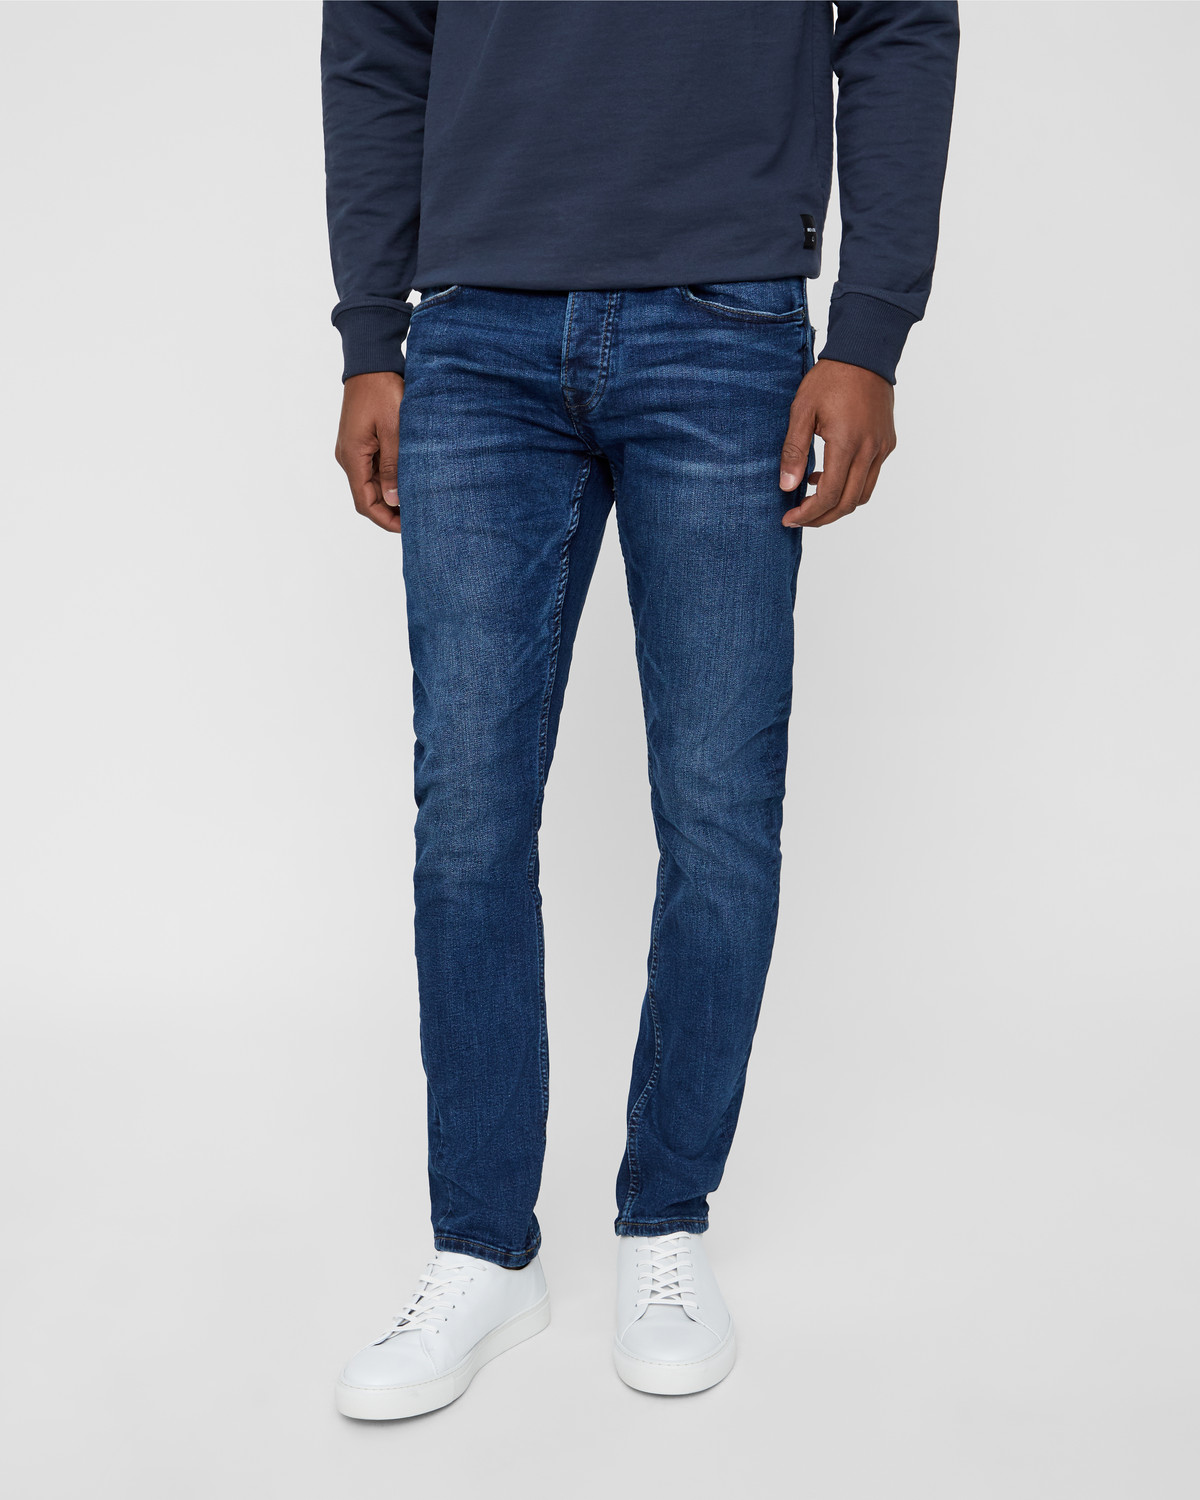 ONLY & SONS Loom D Wash Dcc 2 jeans